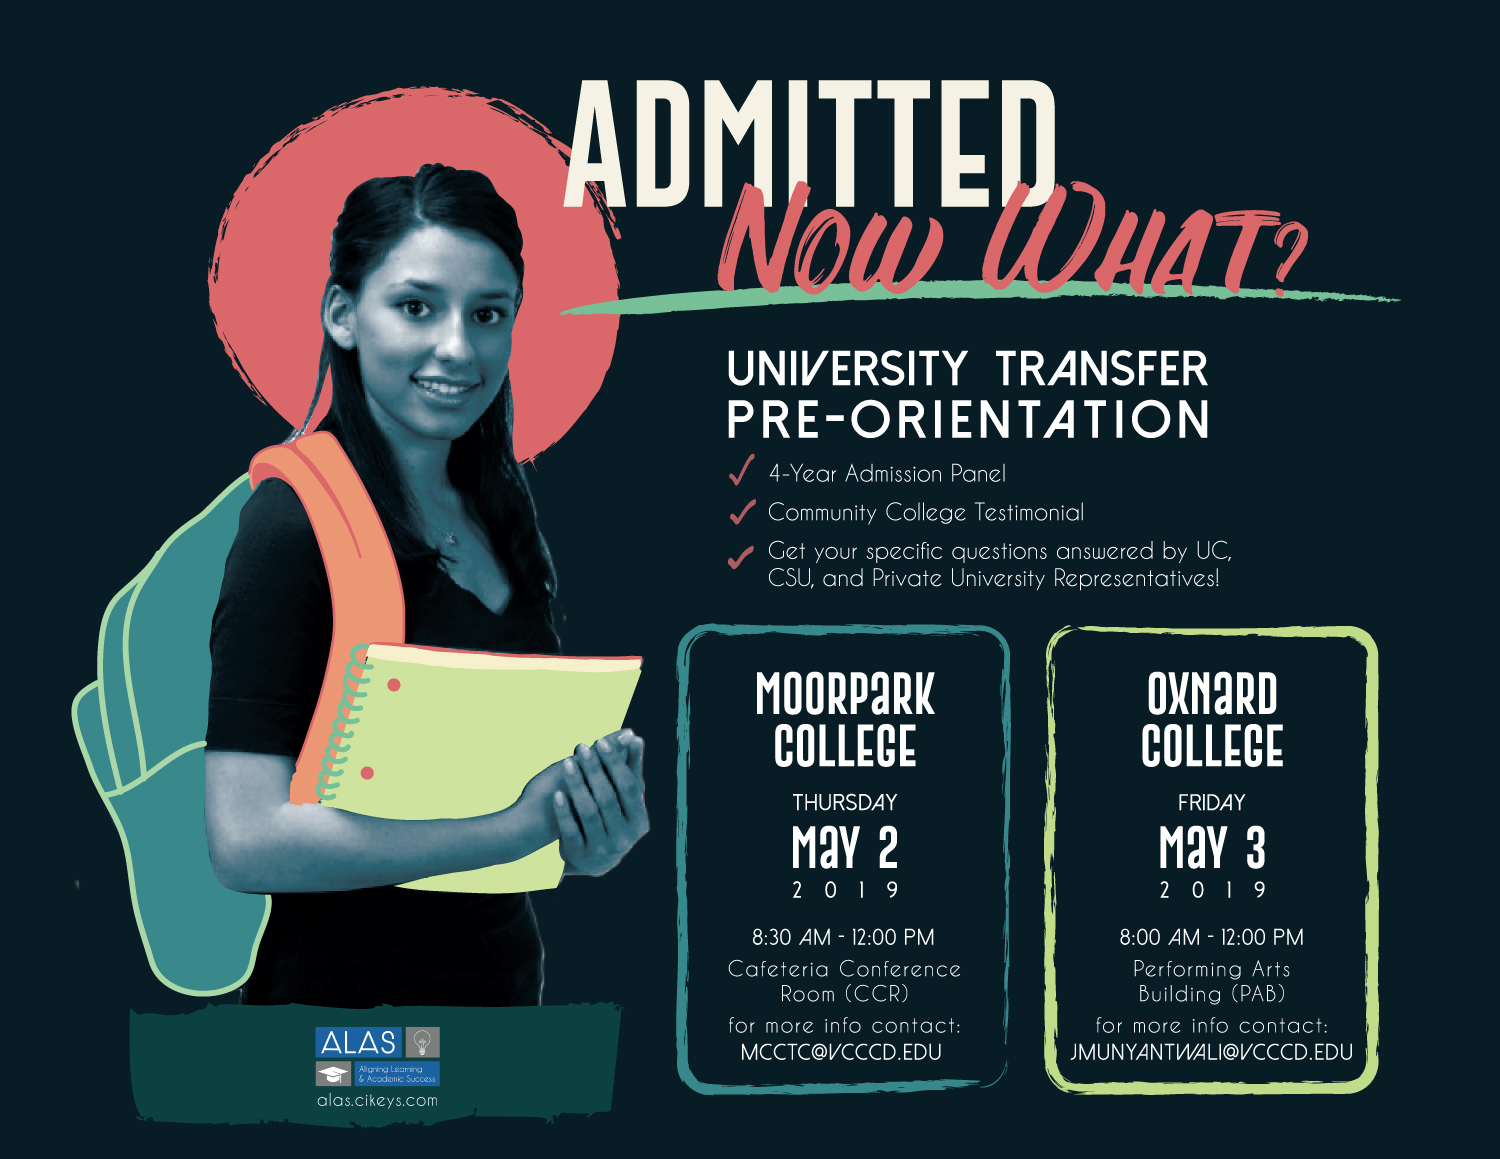 """Admitted: Now What?"" Flyer"